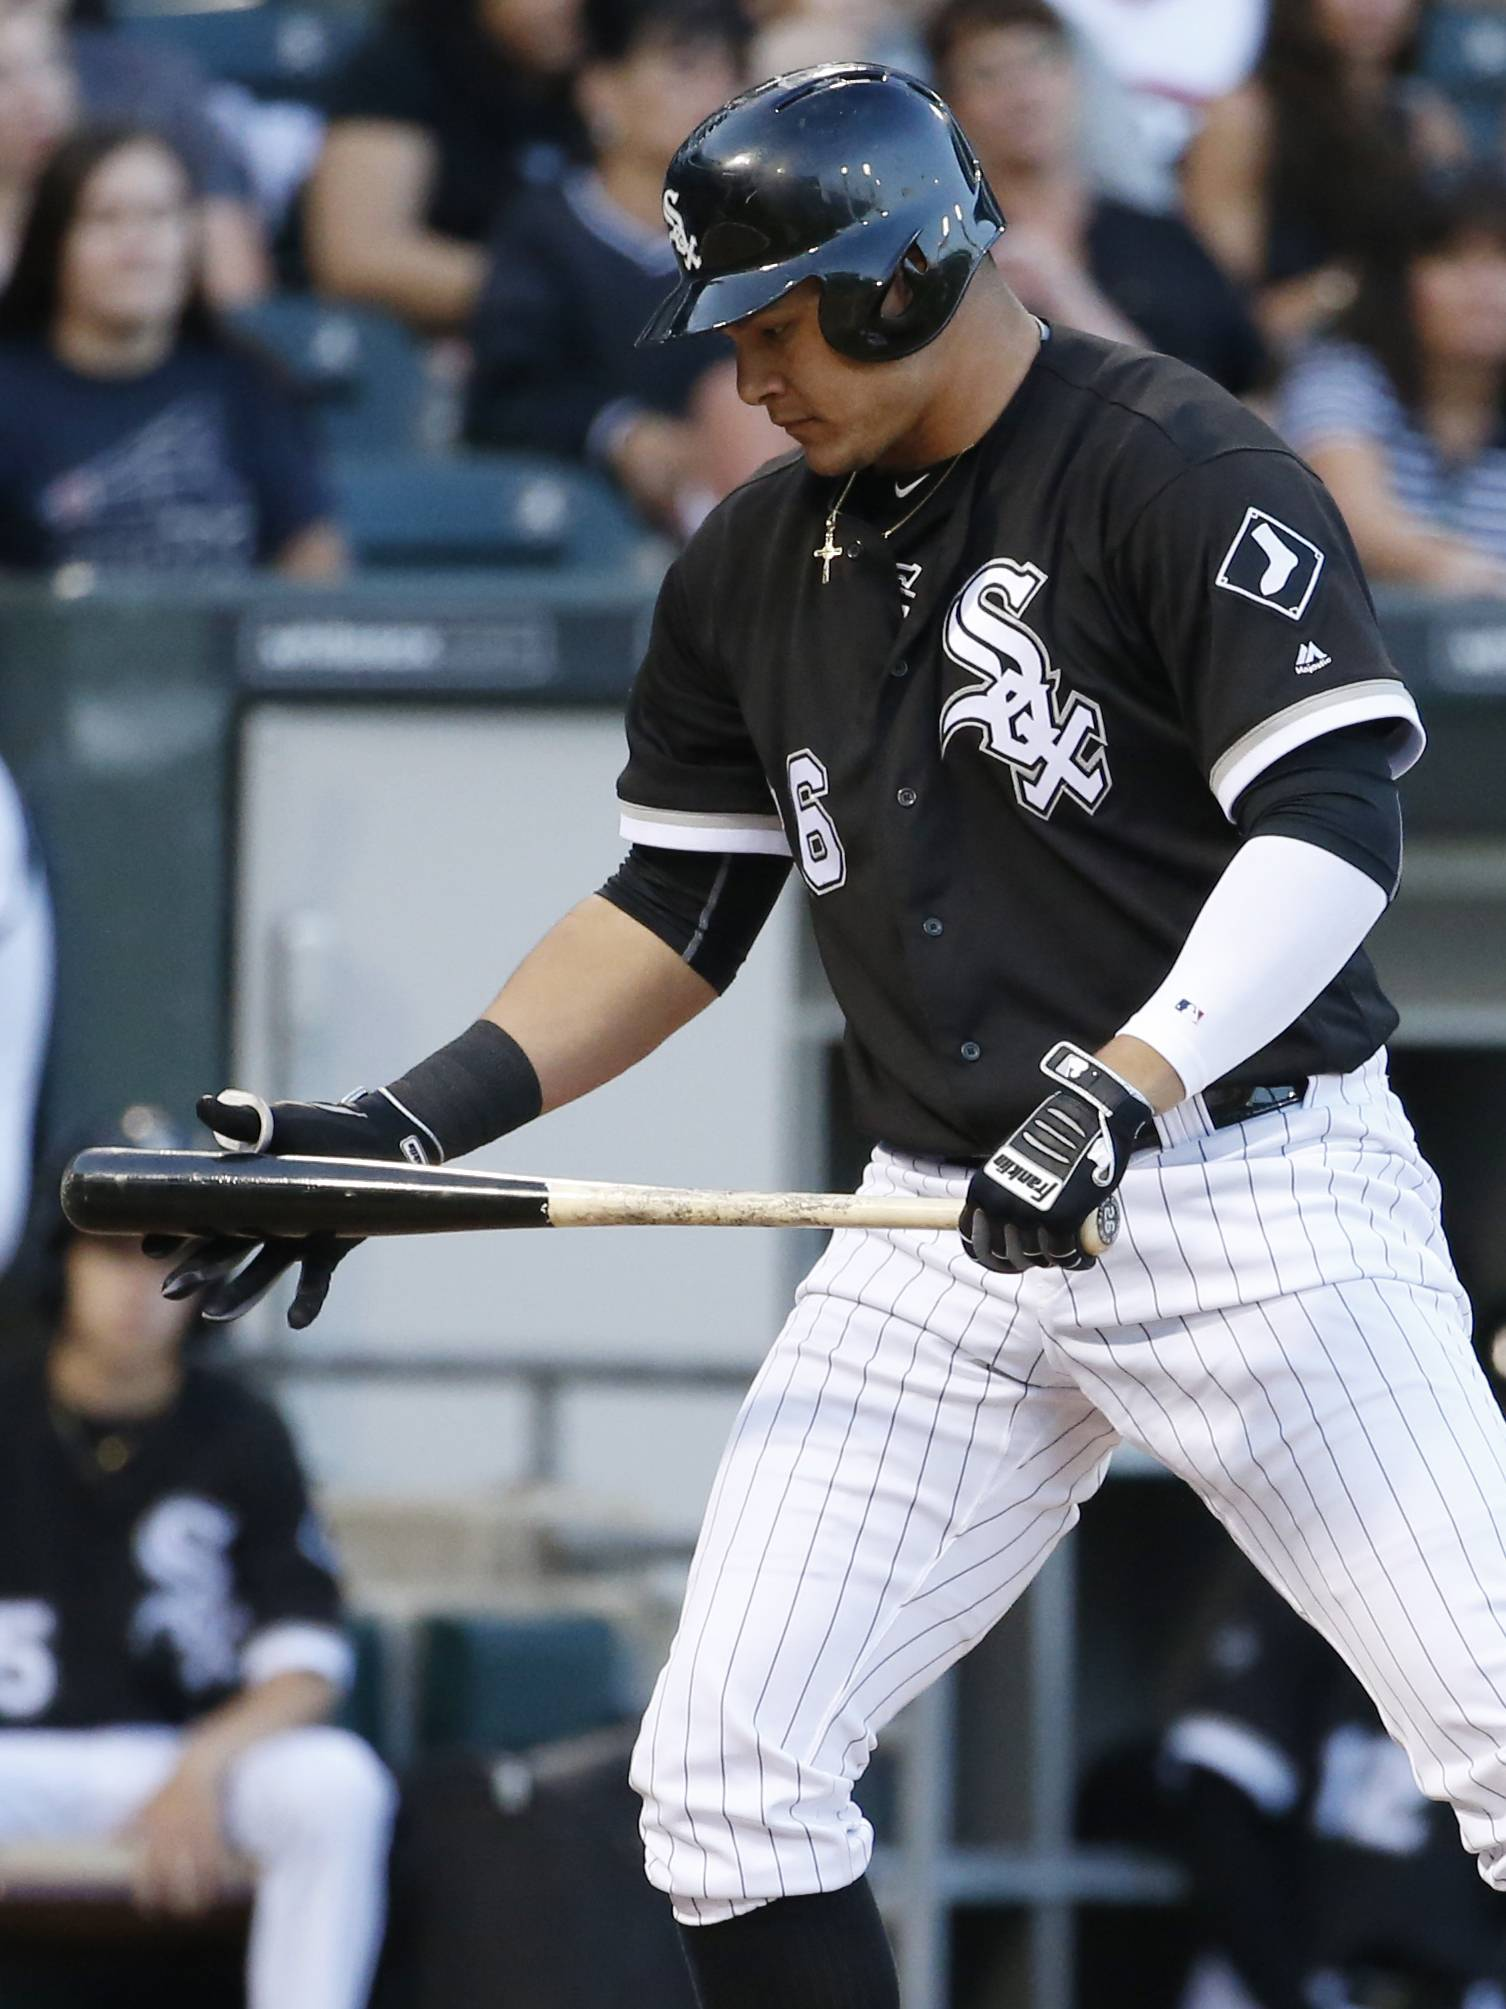 The bats were booming again Saturday afternoon at U.S. Cellular Field, but 7 solo home runs were not enough as the White Sox lost to the Toronto Blue Jays 10-8.